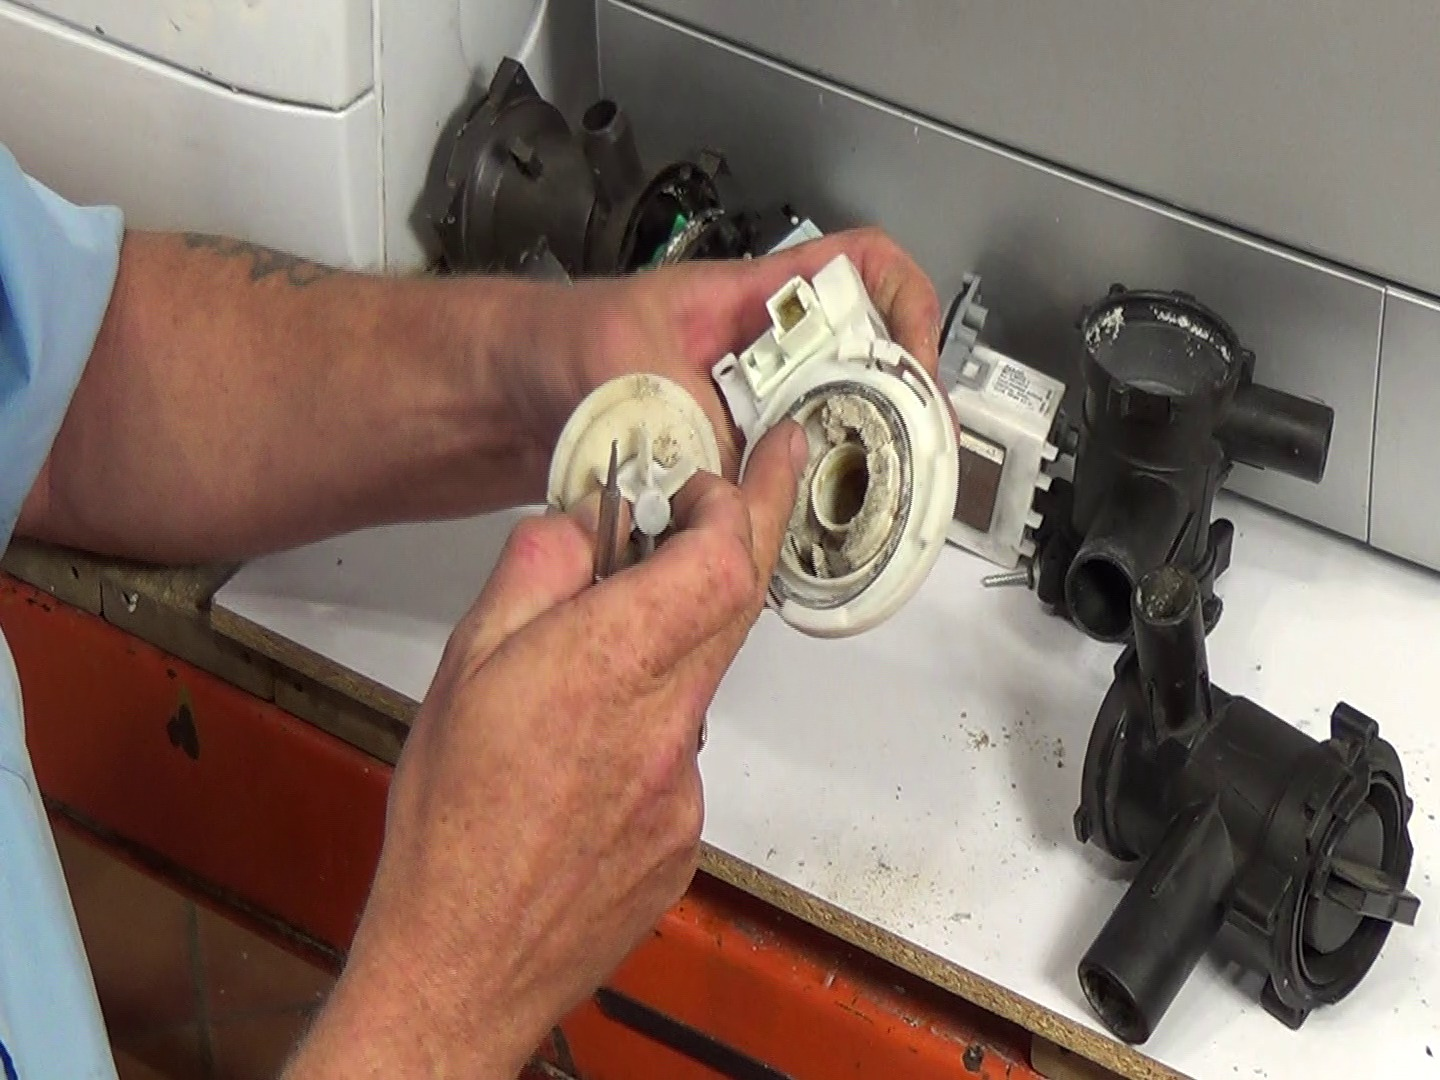 How to open washing machine pump filter that is stuck or for Washing machine motor repair